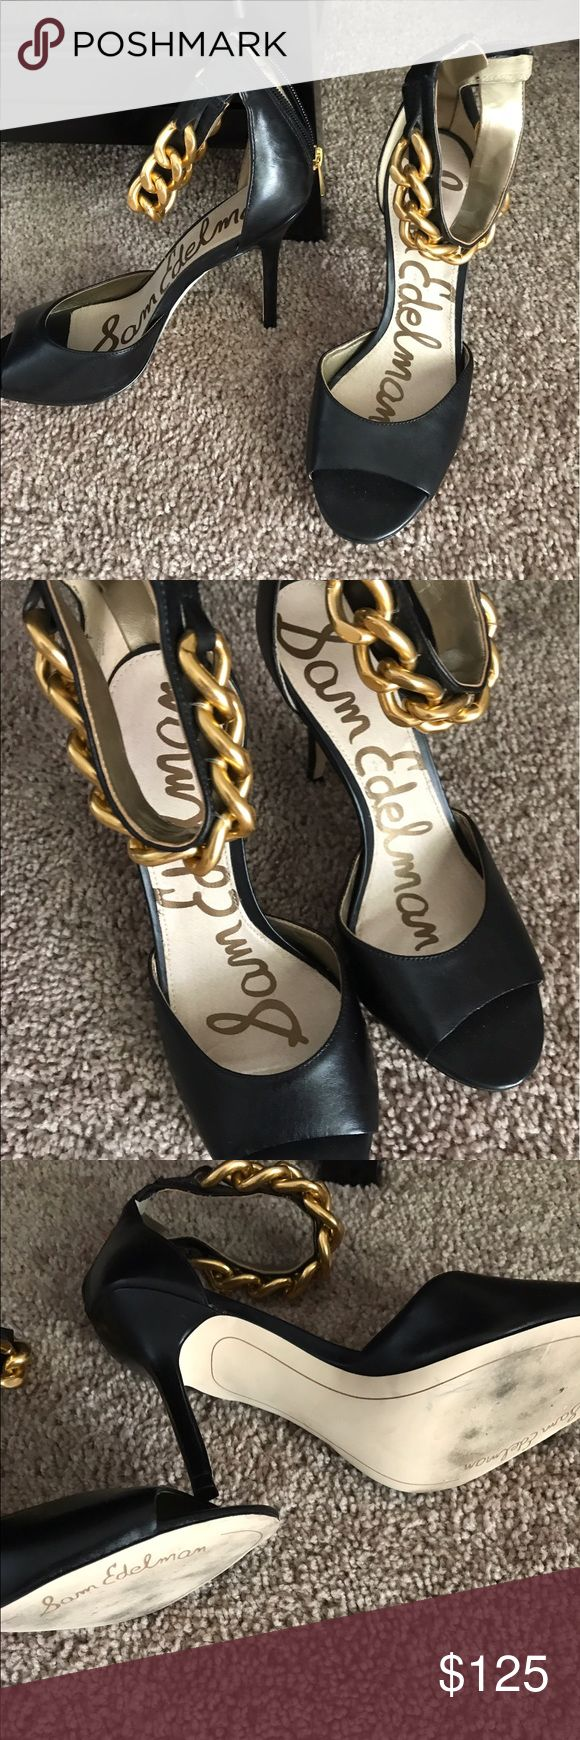 just In Sam Edelman ankle strap heels Beautiful black leather with gold chain attached & zipper backs high heels & open toe combines the comfort of a sandal with heel support like an enclosed shoe so edgy with the chain EUC no marks wore once as you can see in photos of the leather sole Sam Edelman Shoes Heels